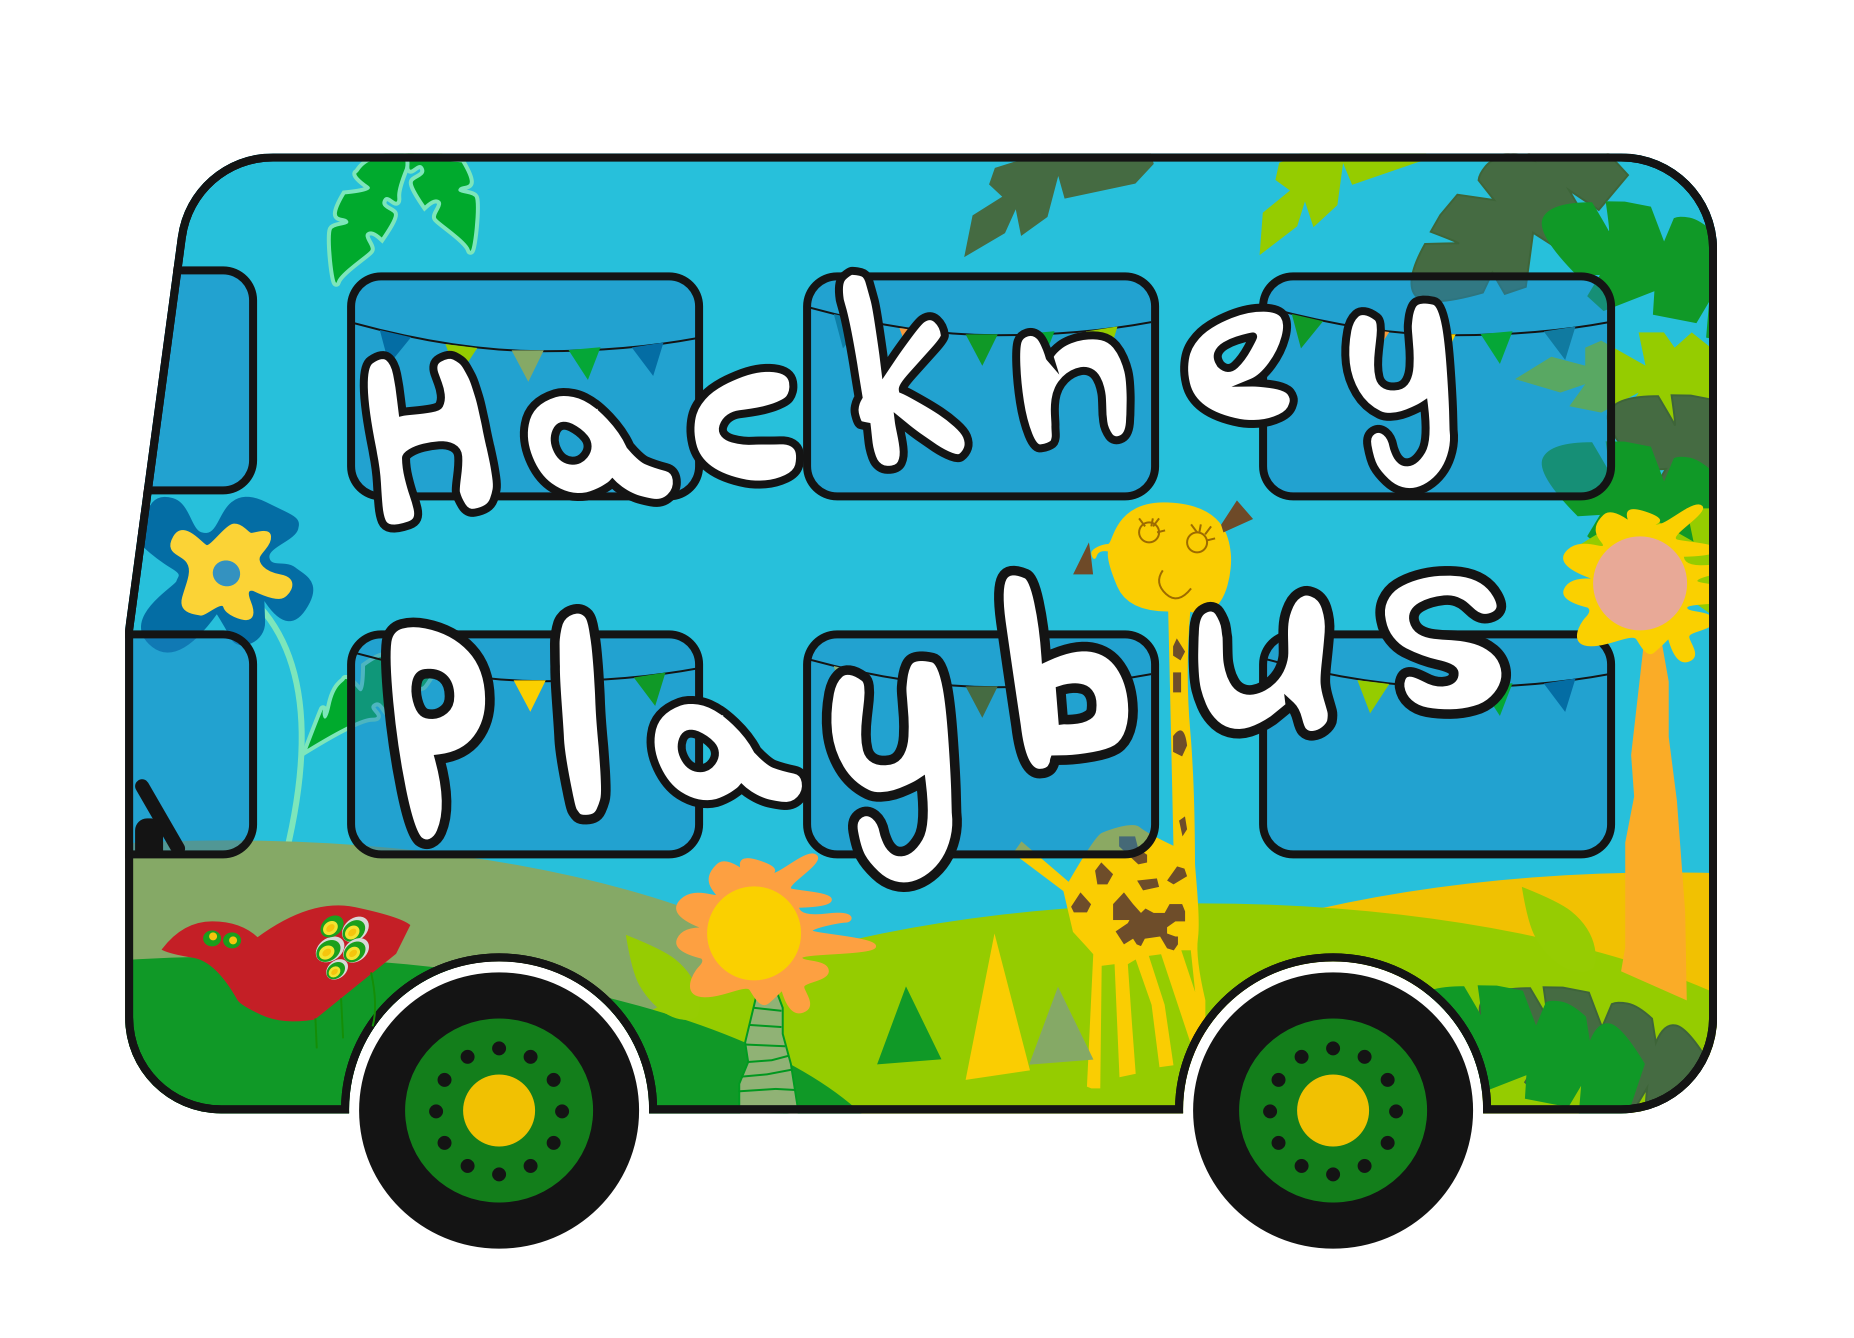 Hackney Playbus